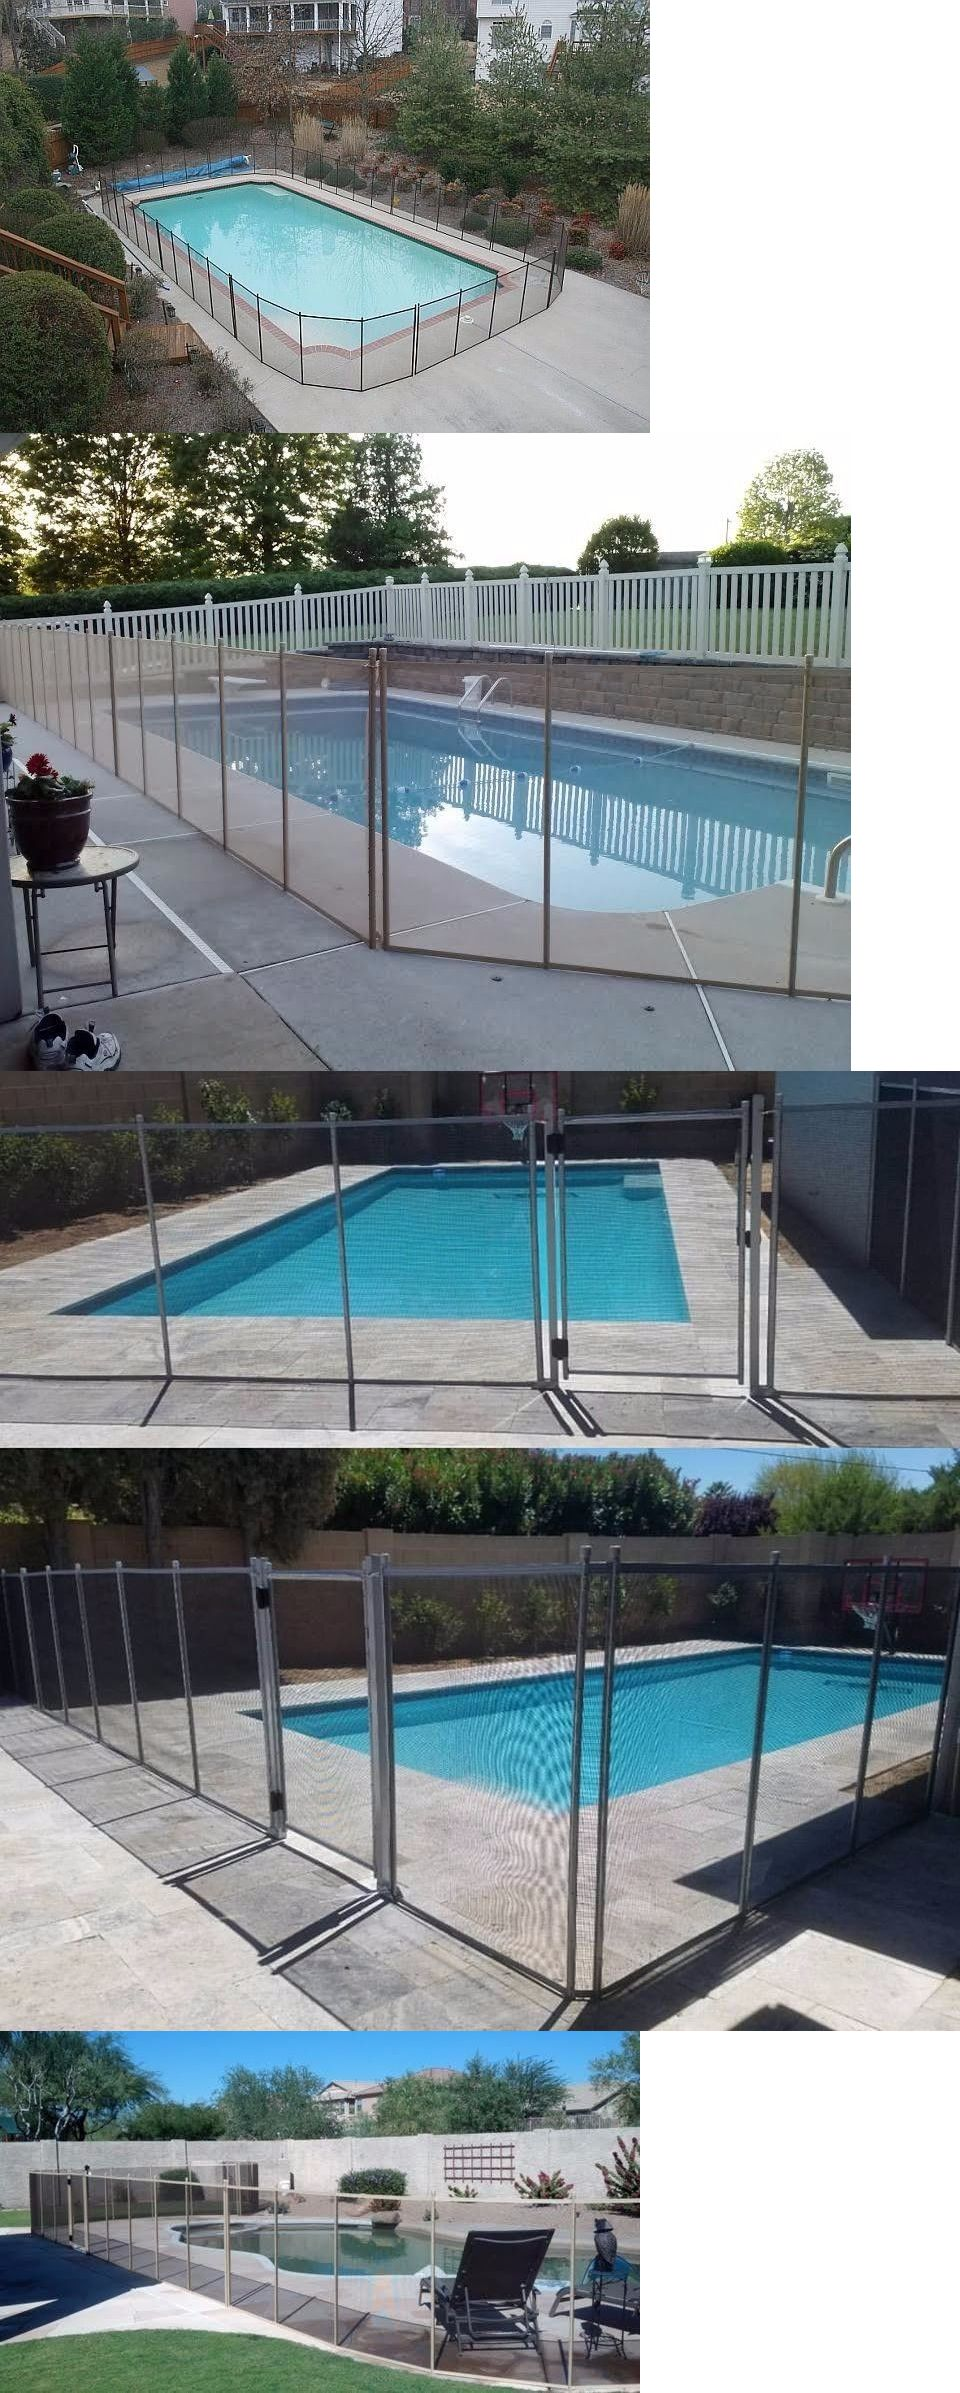 Pool Fences 167851: Pool Fence Swimming Pool Removable 5.25 Per Ft ...